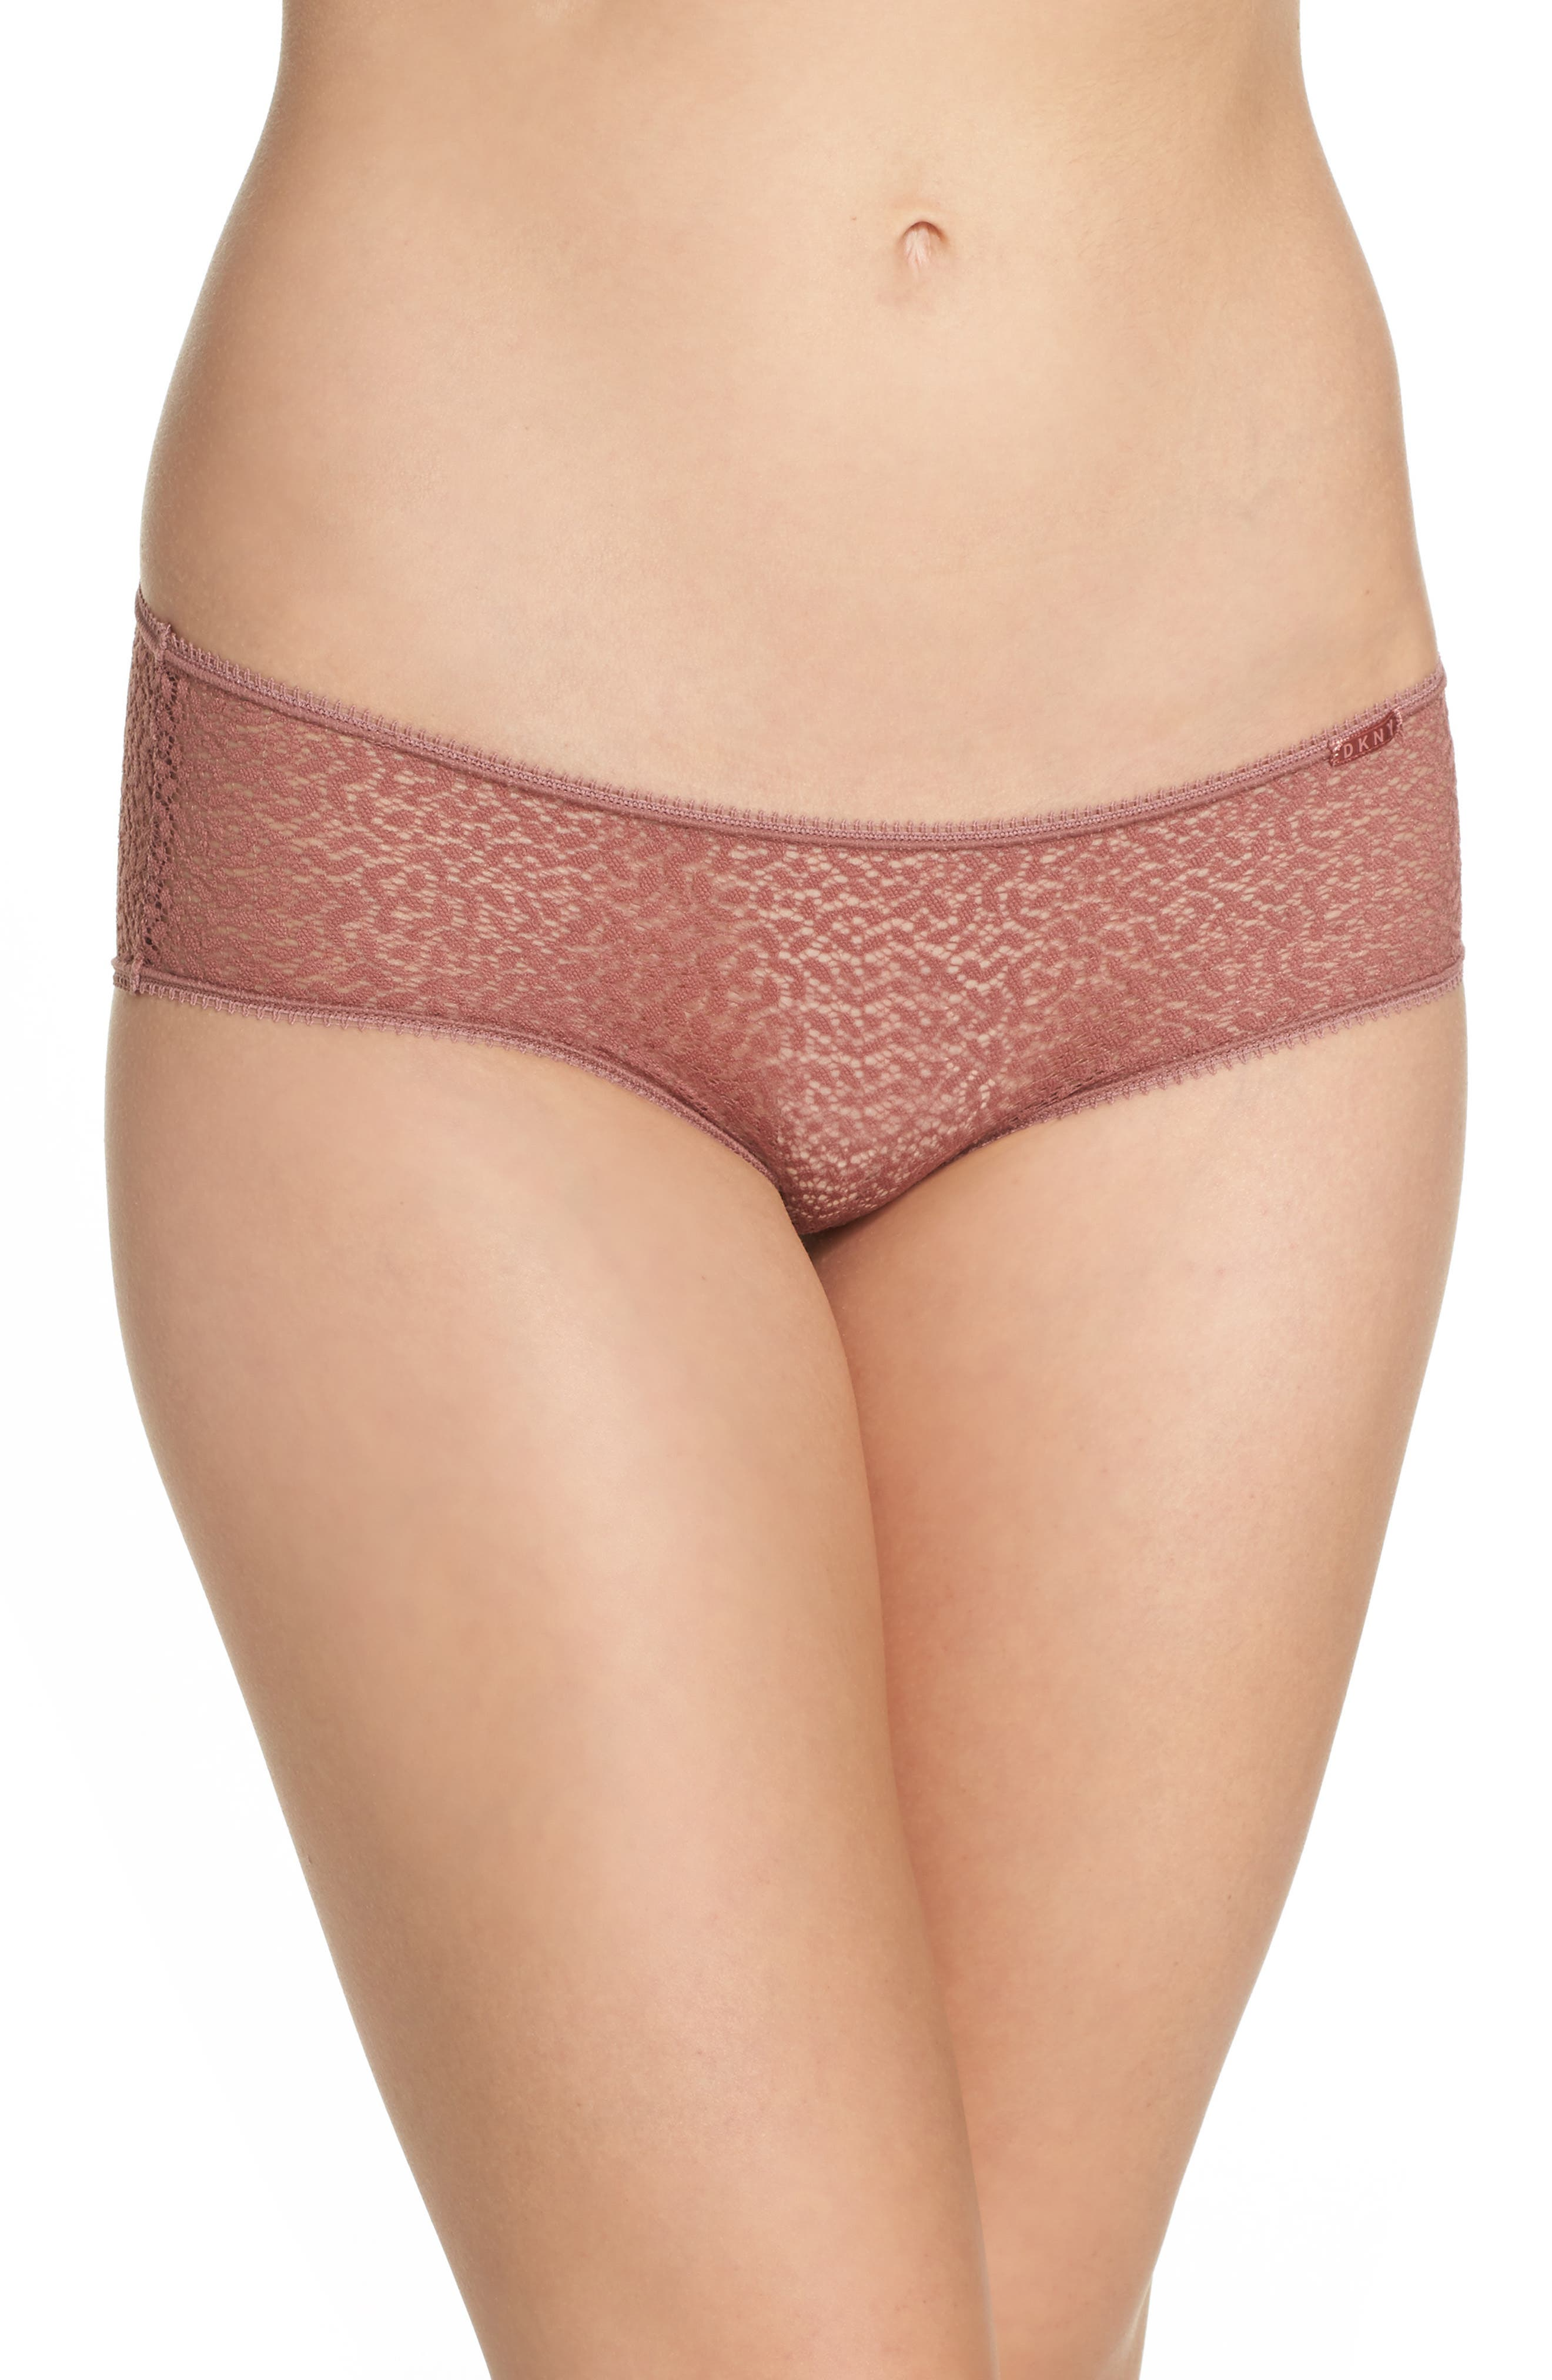 Modern Lace Hipster Panties,                         Main,                         color, Rosewood 7Nq